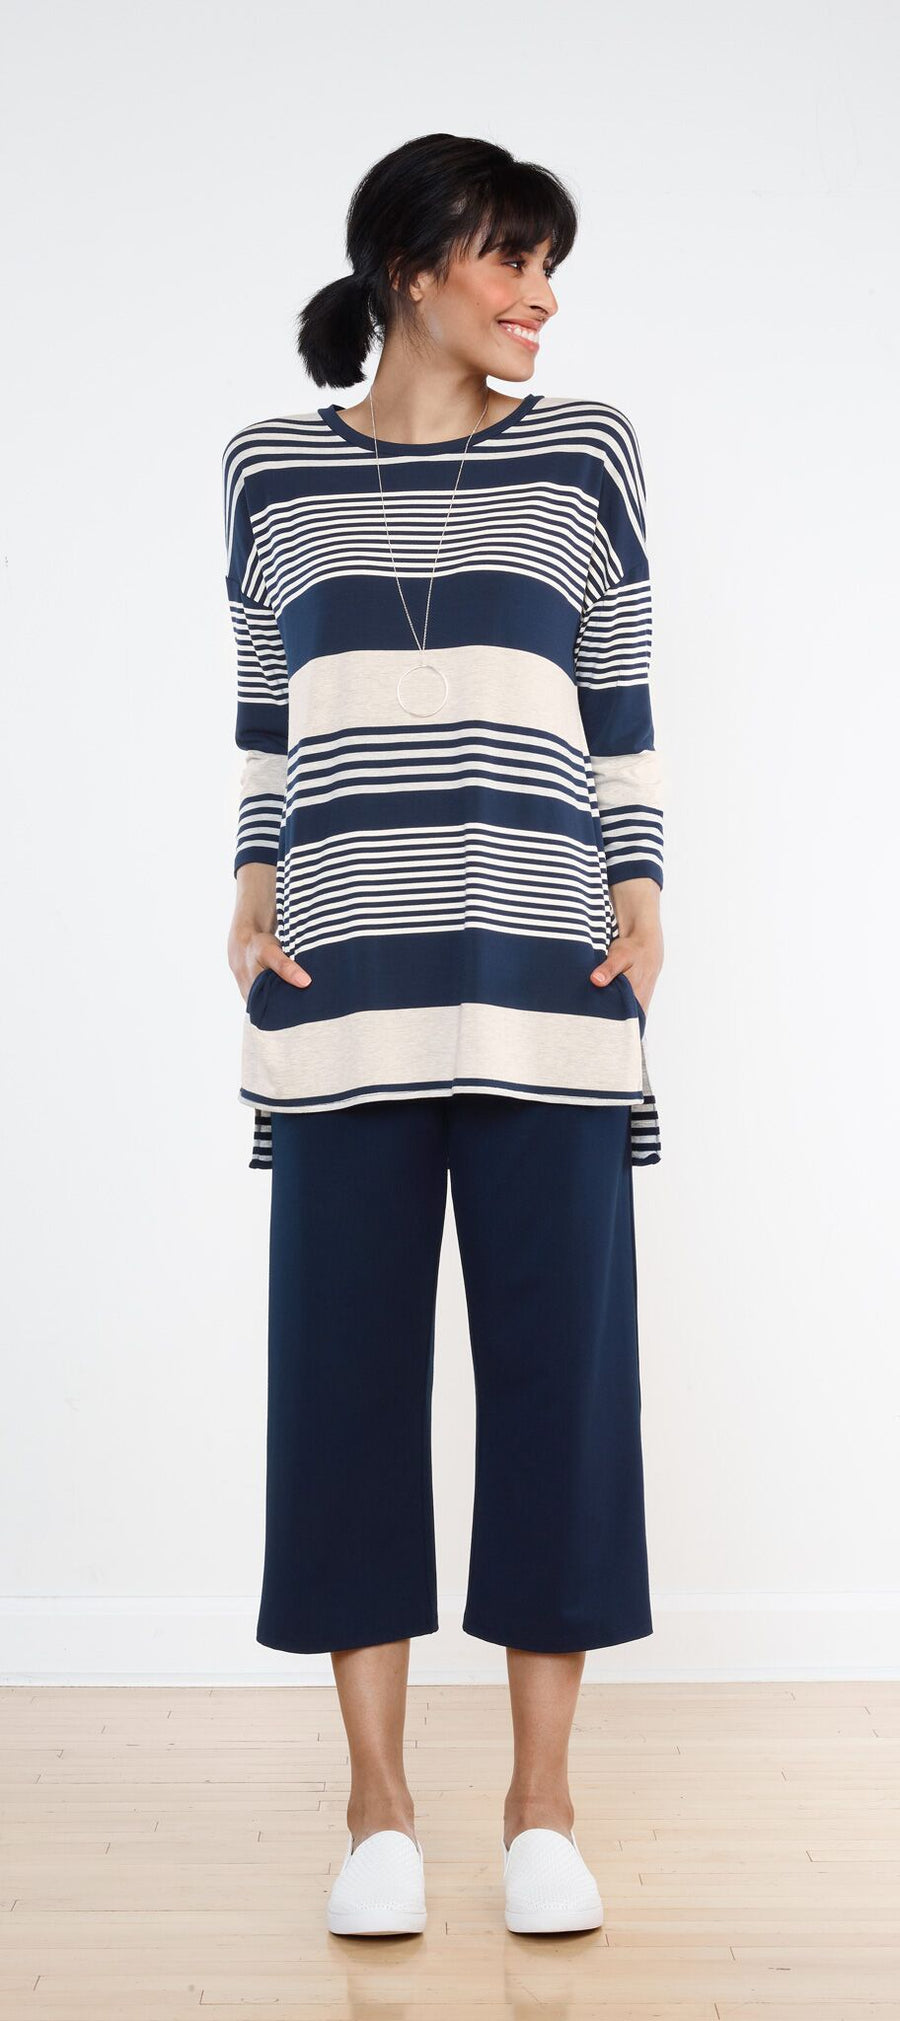 Nikki Drop Shoulder Tunic - Nautical Stripe